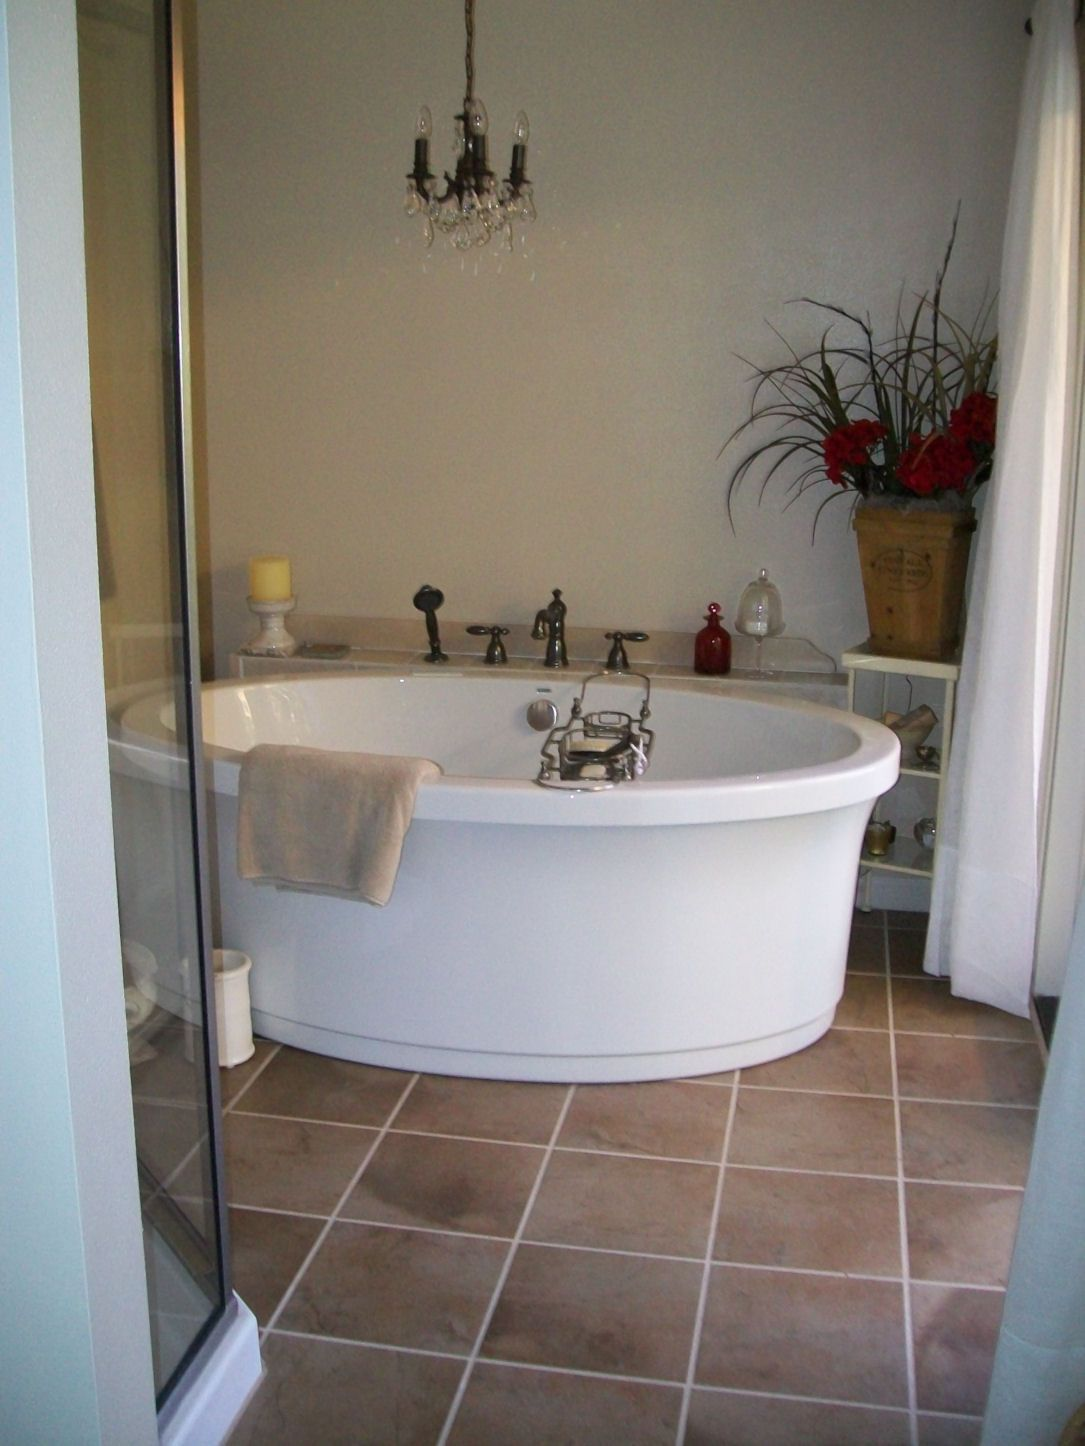 new bath almost complete, yeah!